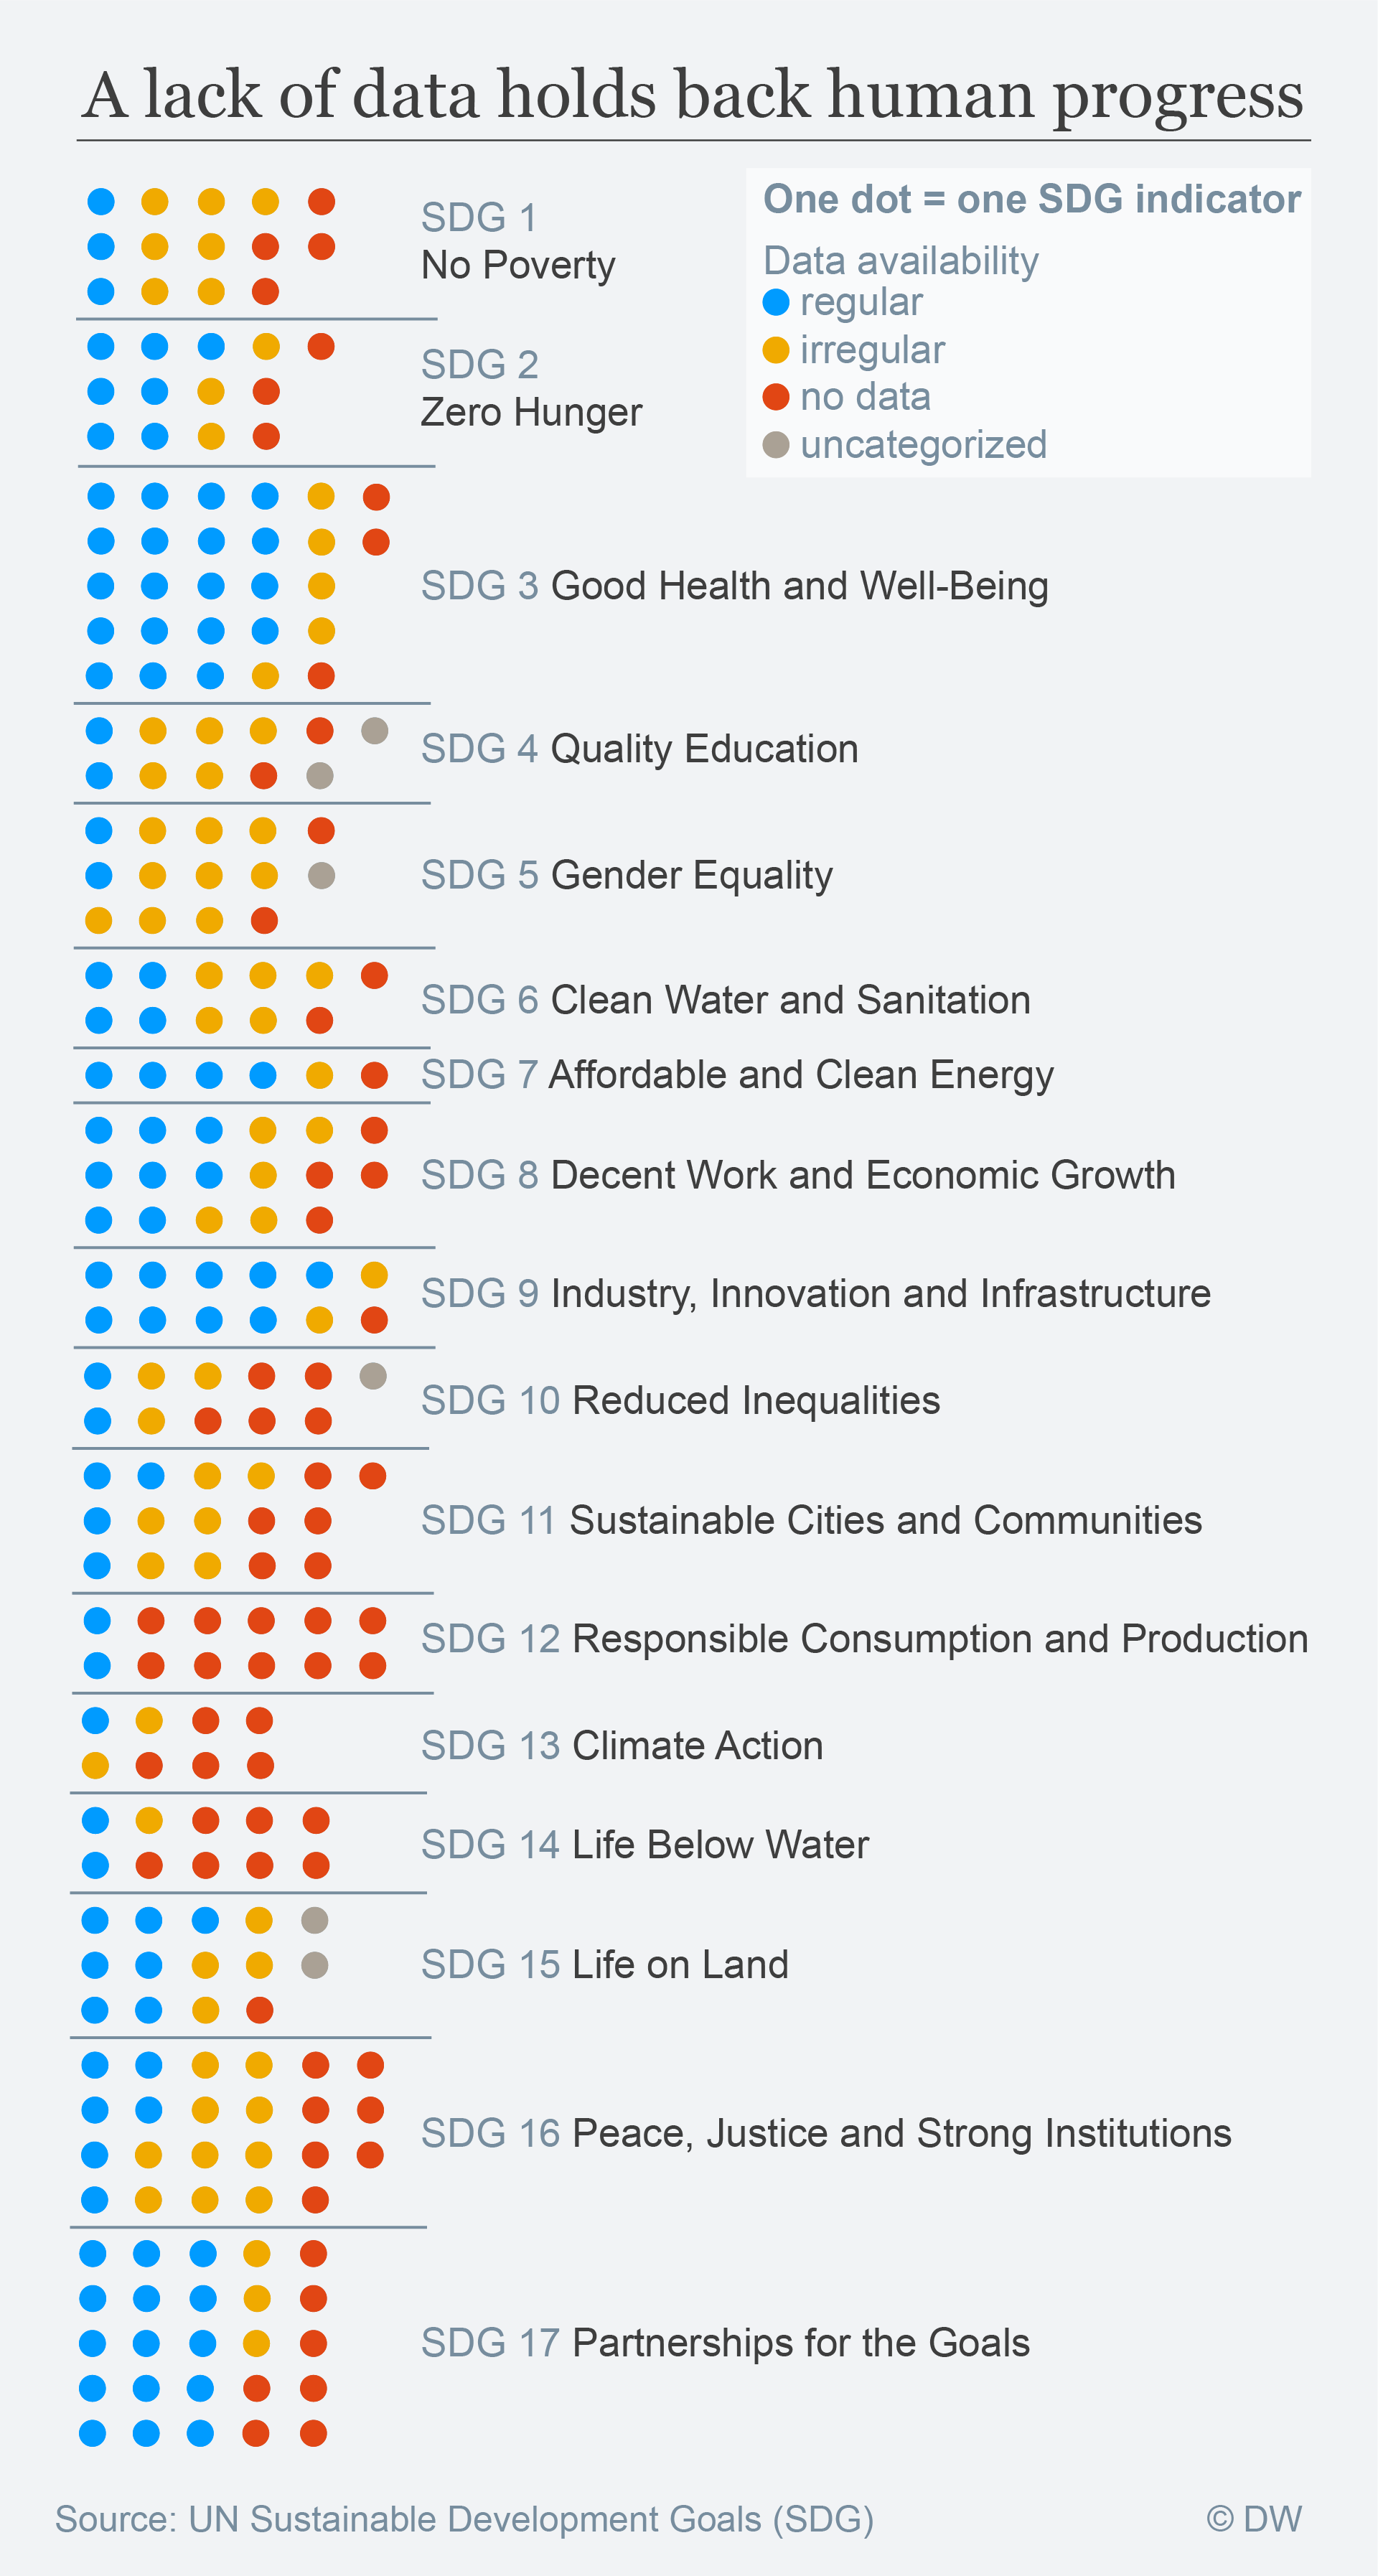 Data Visualisation: Data availablity by Sustainable Development Goal